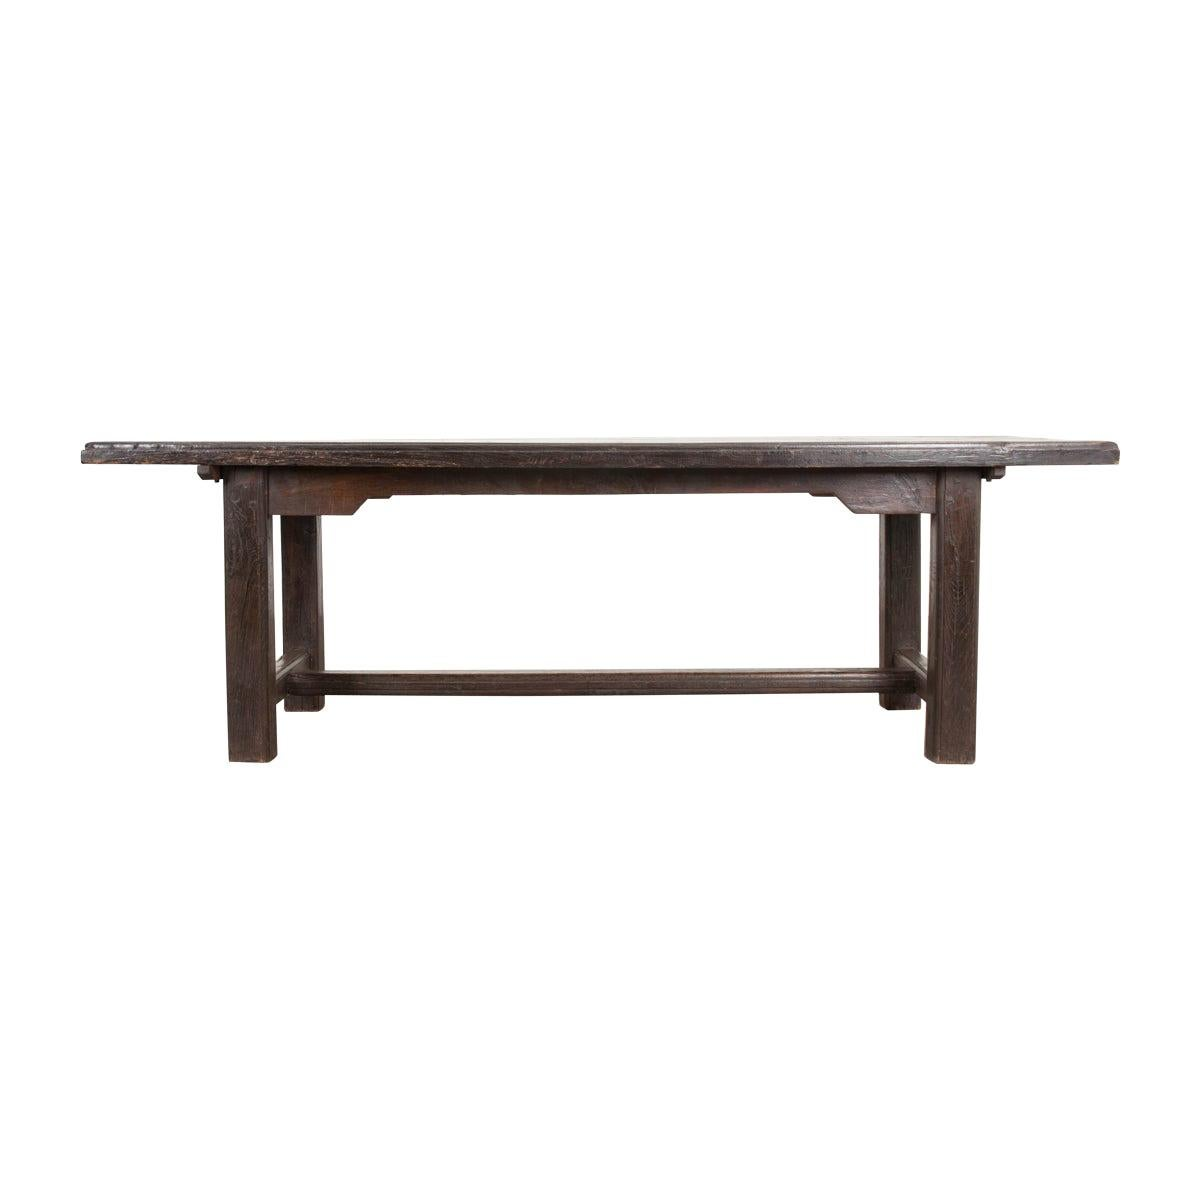 French 19th Century Provincial Oak Trestled Farm Table